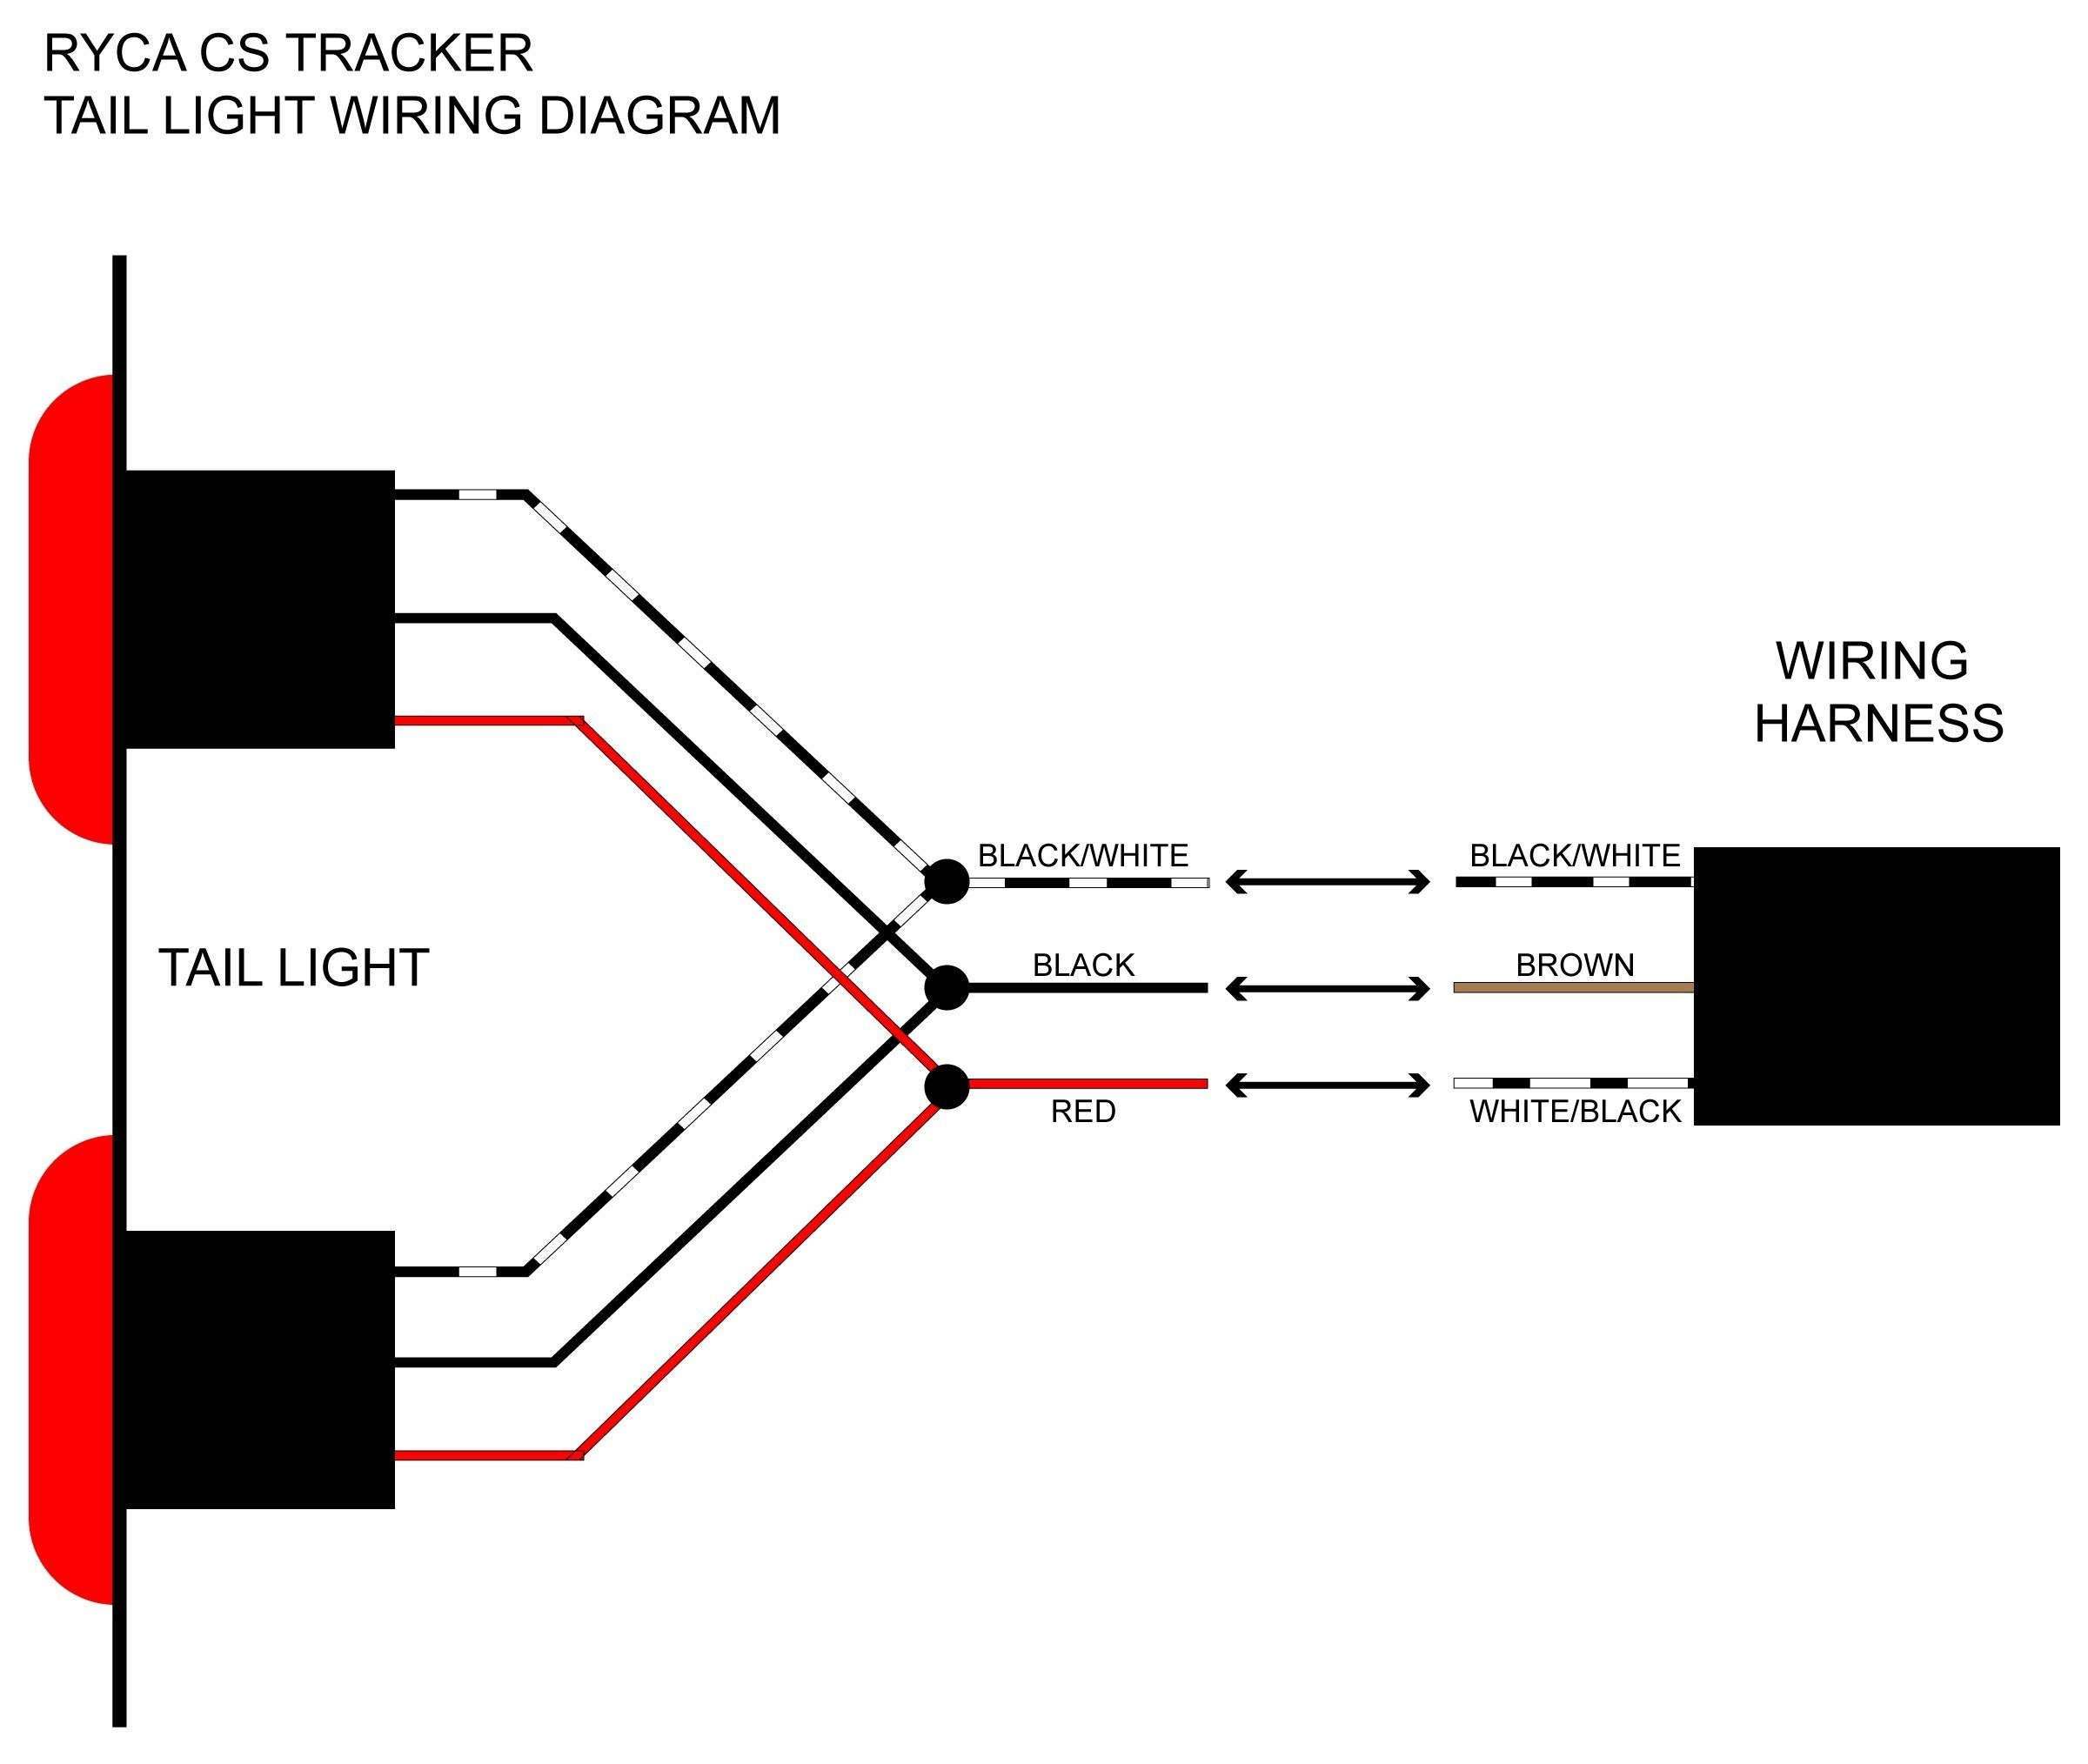 Motorcycle Tail Light Wiring Diagram Wiring Diagram for